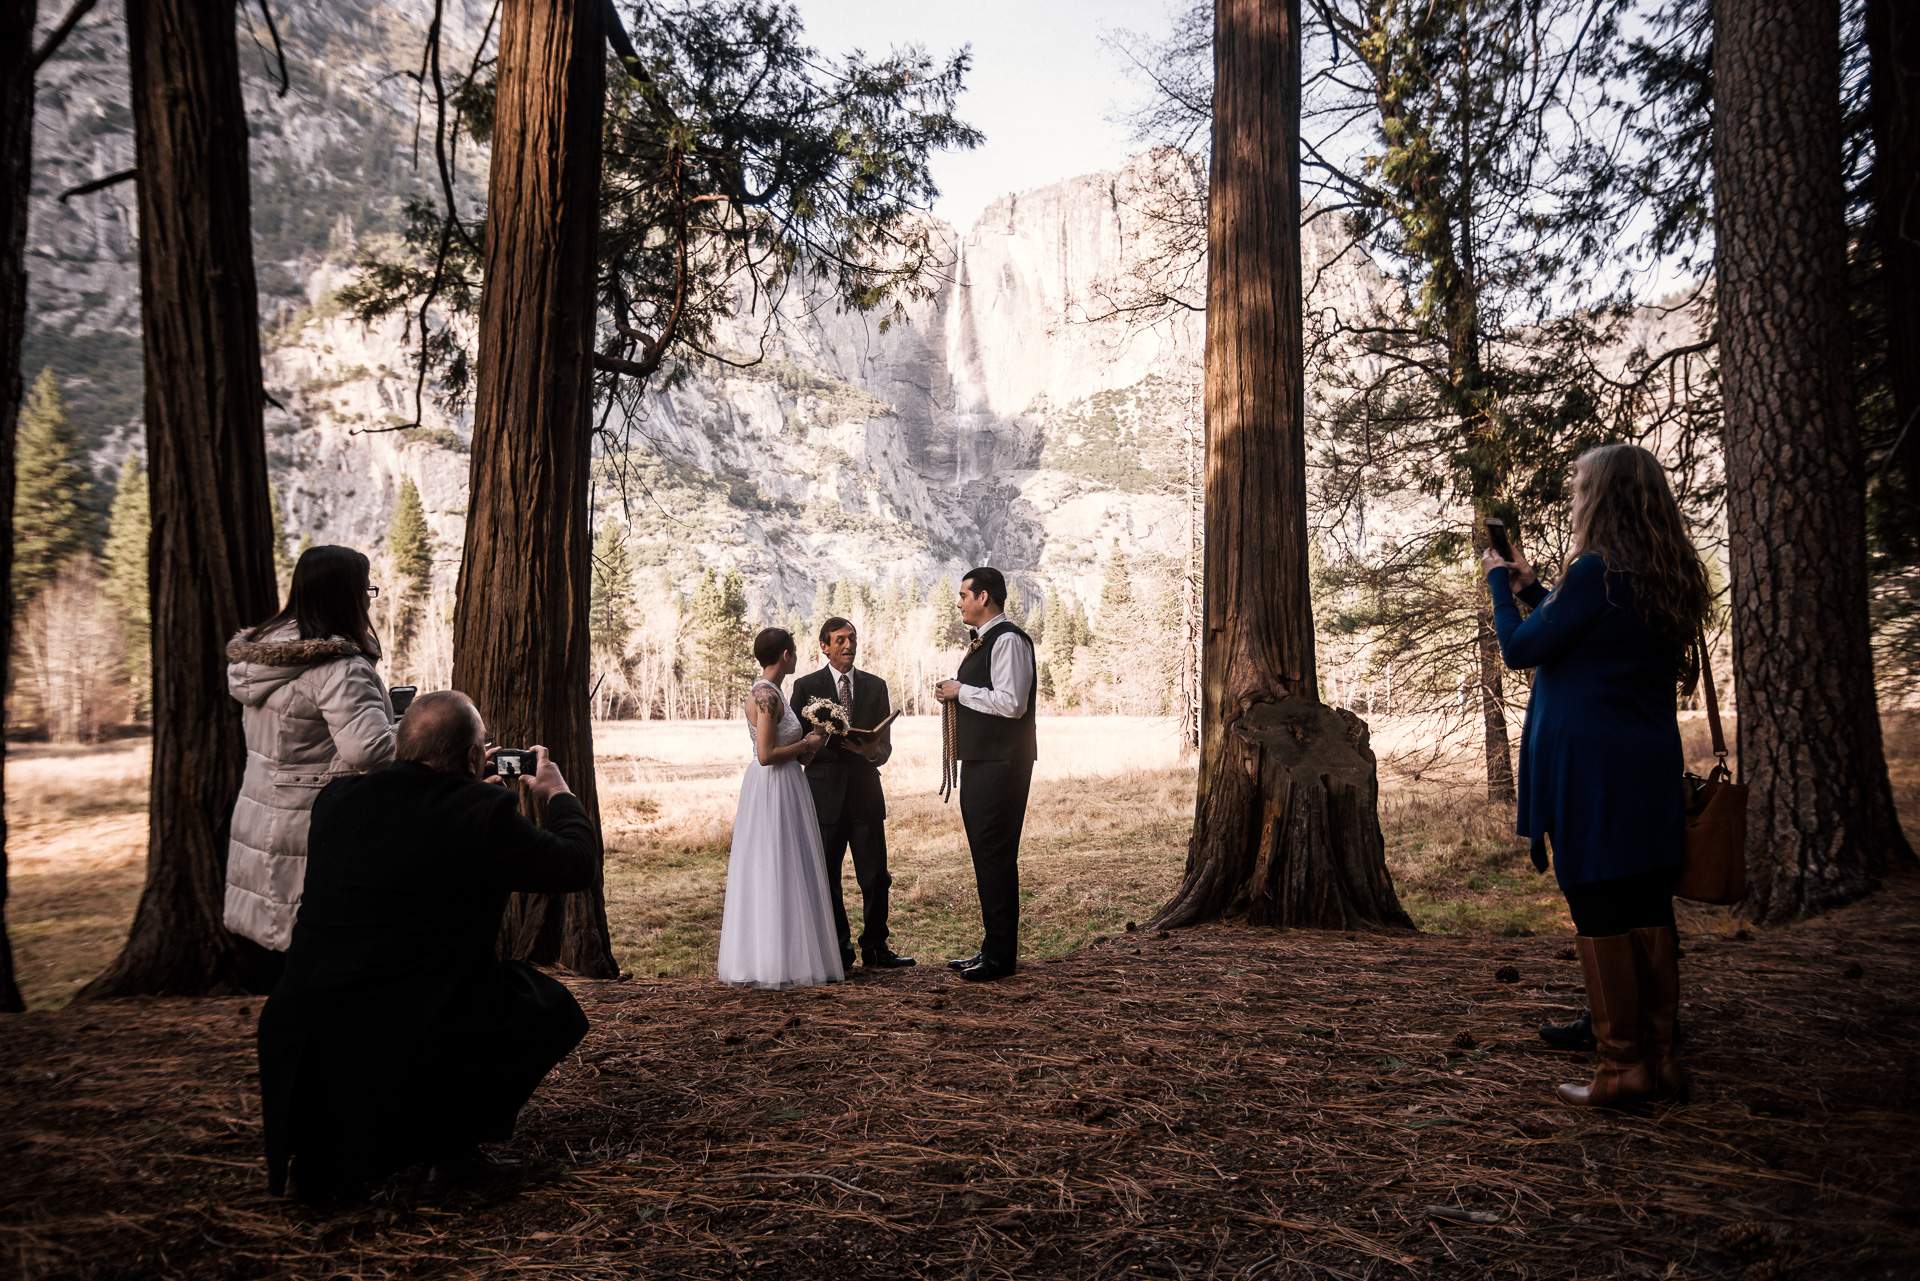 Yosemite elopement photographer captures wedding ceremony in yosemite national park